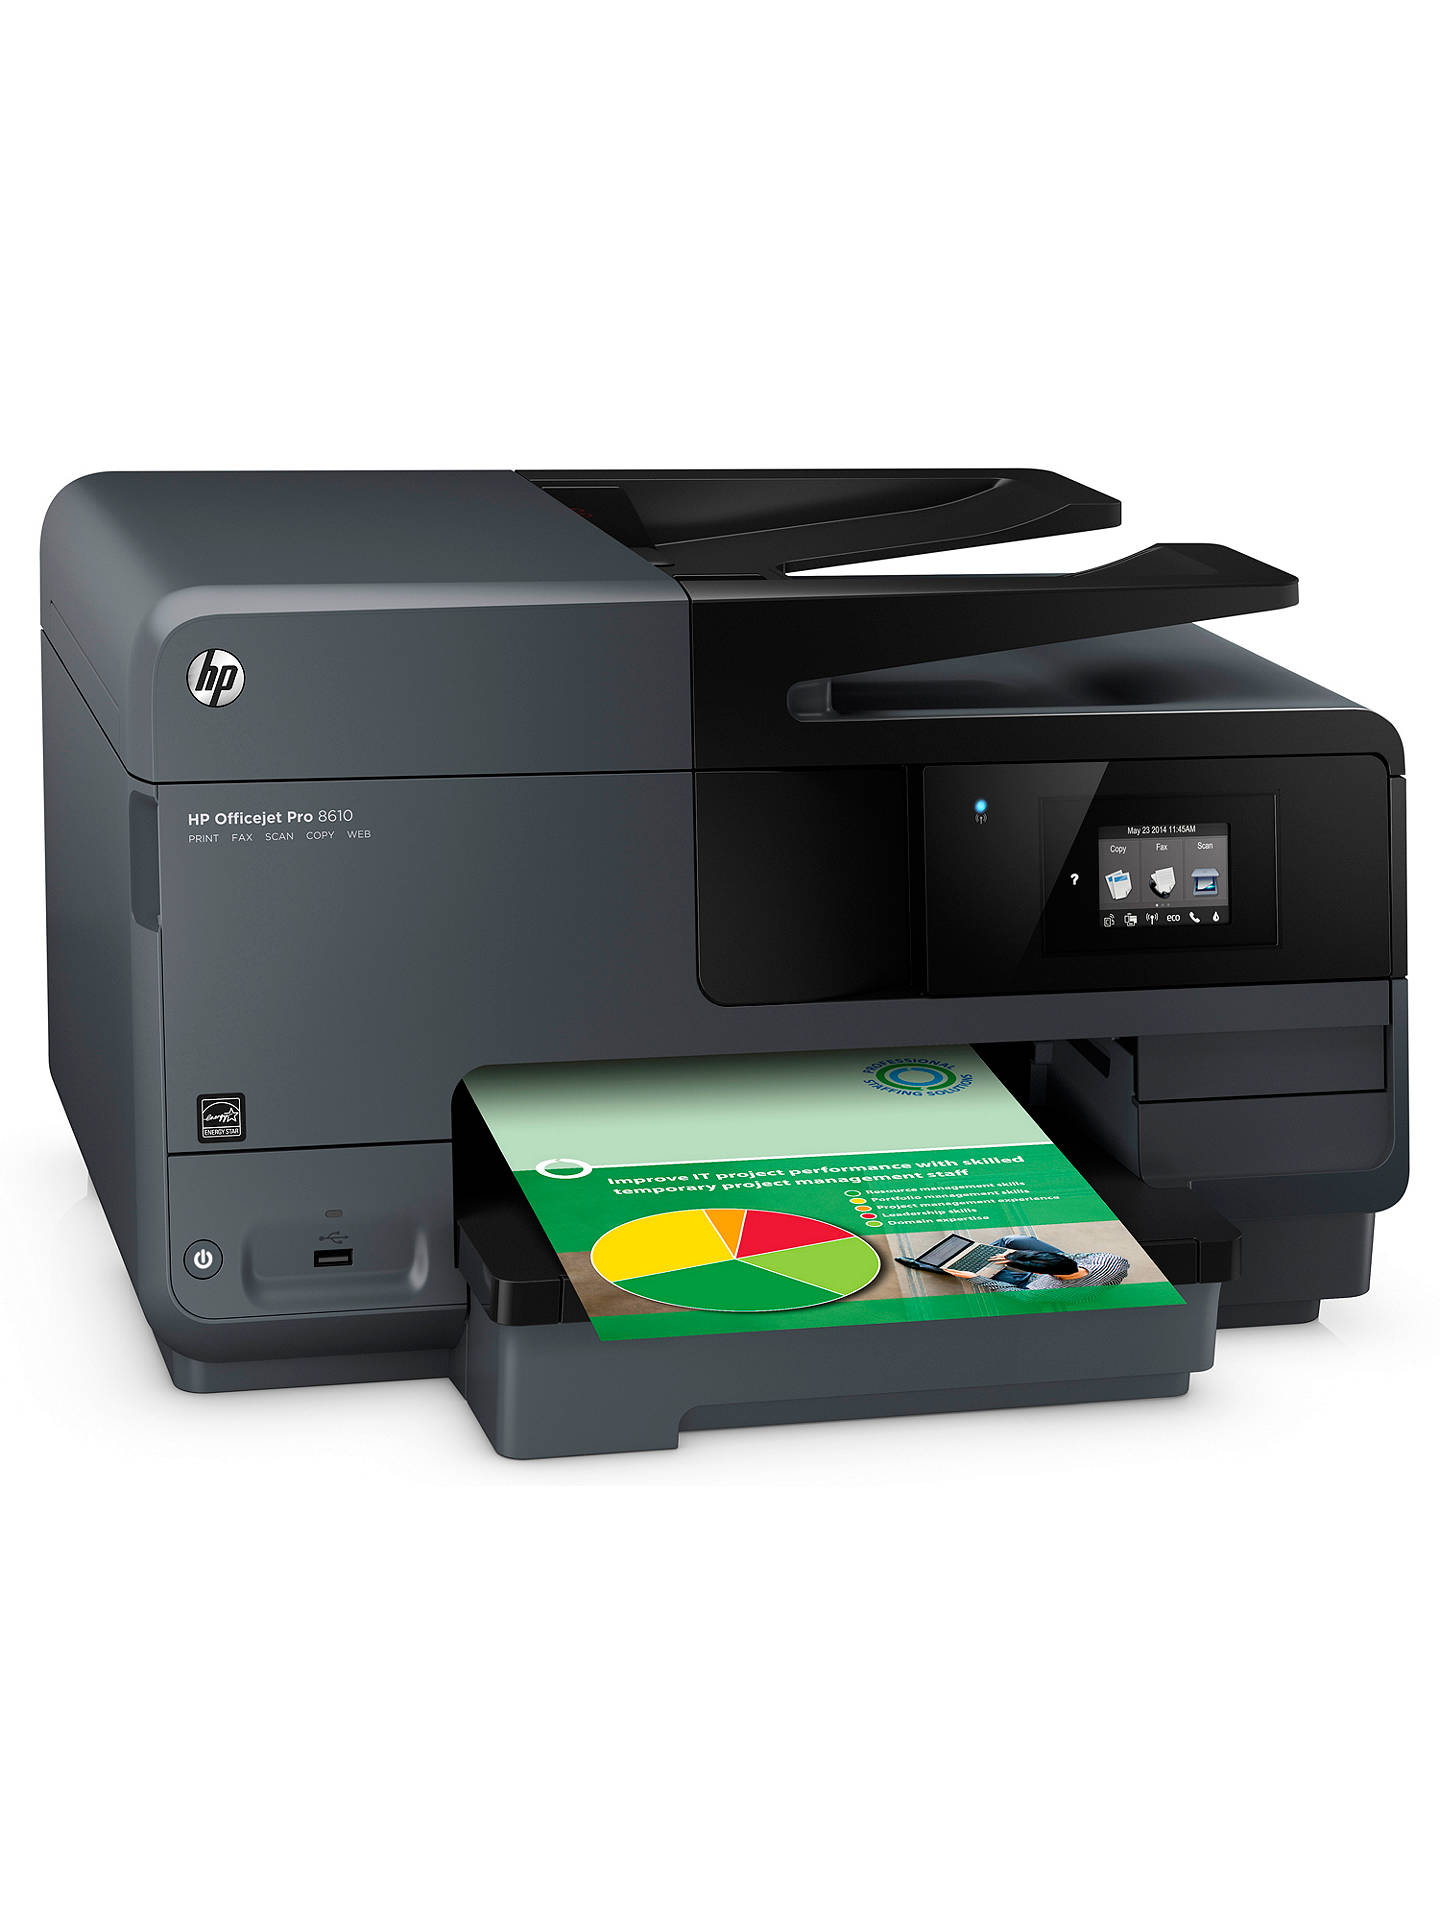 Hp Officejet Pro 8610 Wireless E All In One Printer Fax Machine